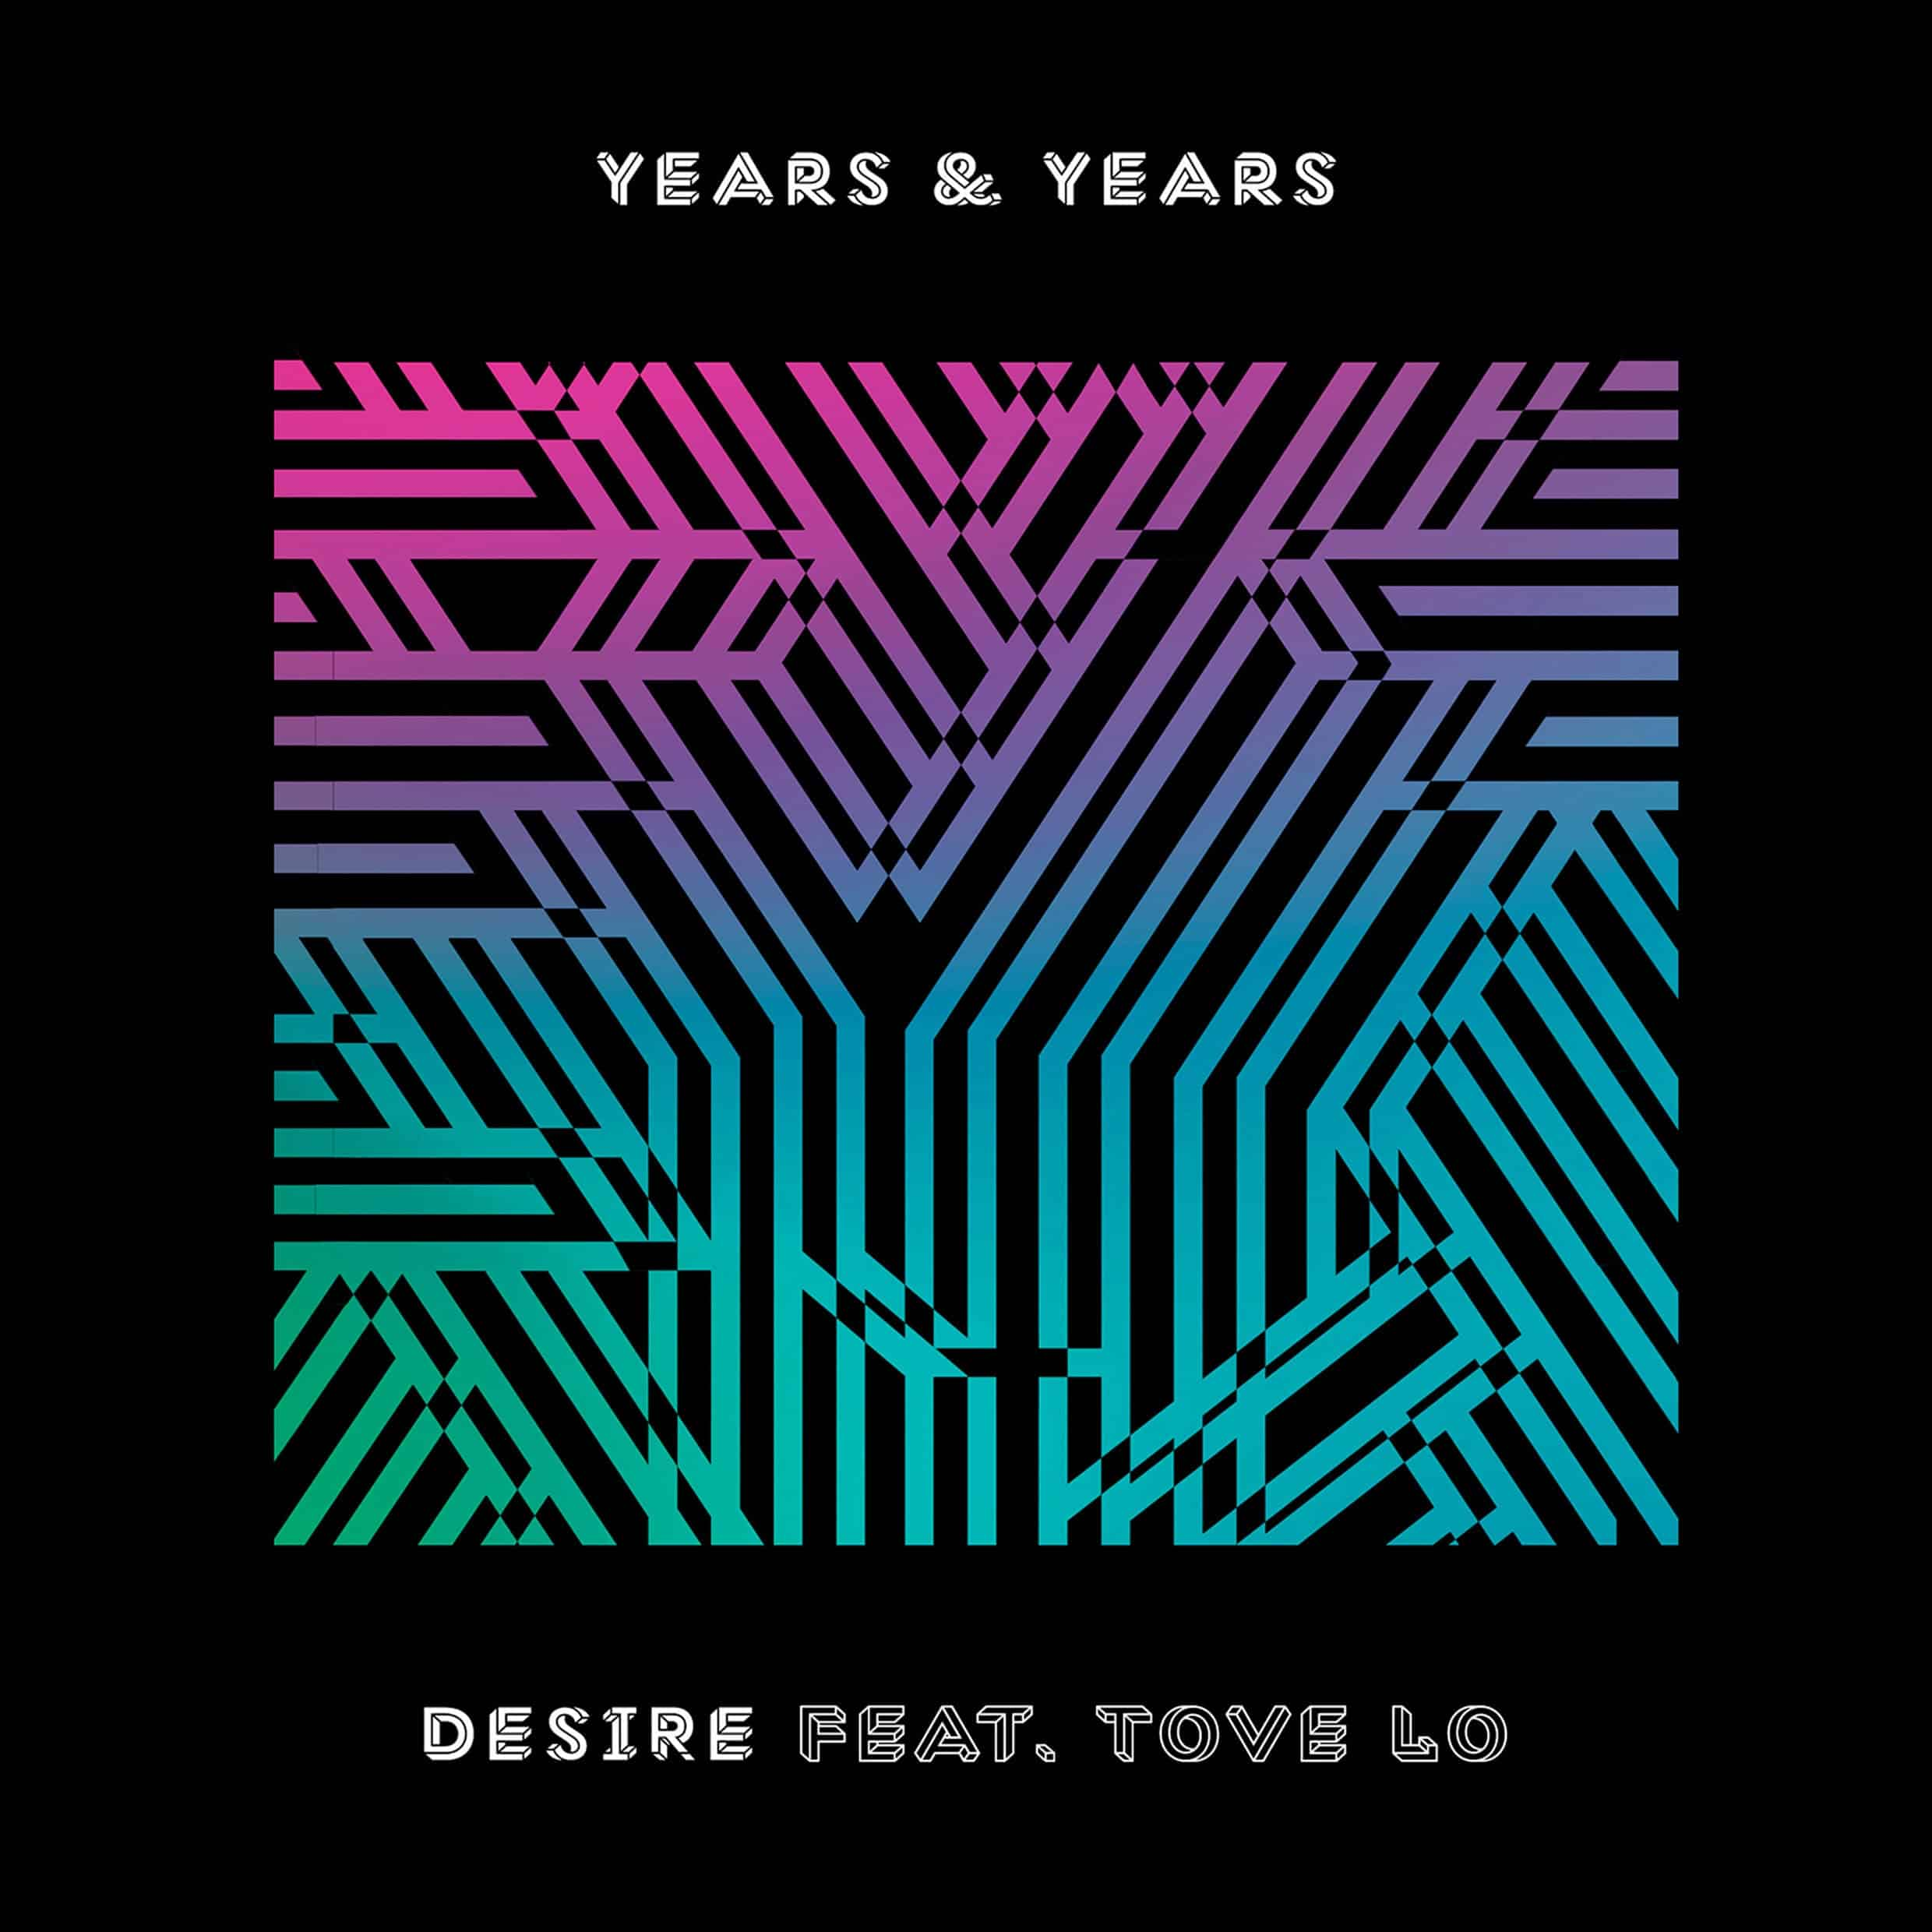 Years-Years-Desire-featuring-Tove-Lo-2016-2480x2480